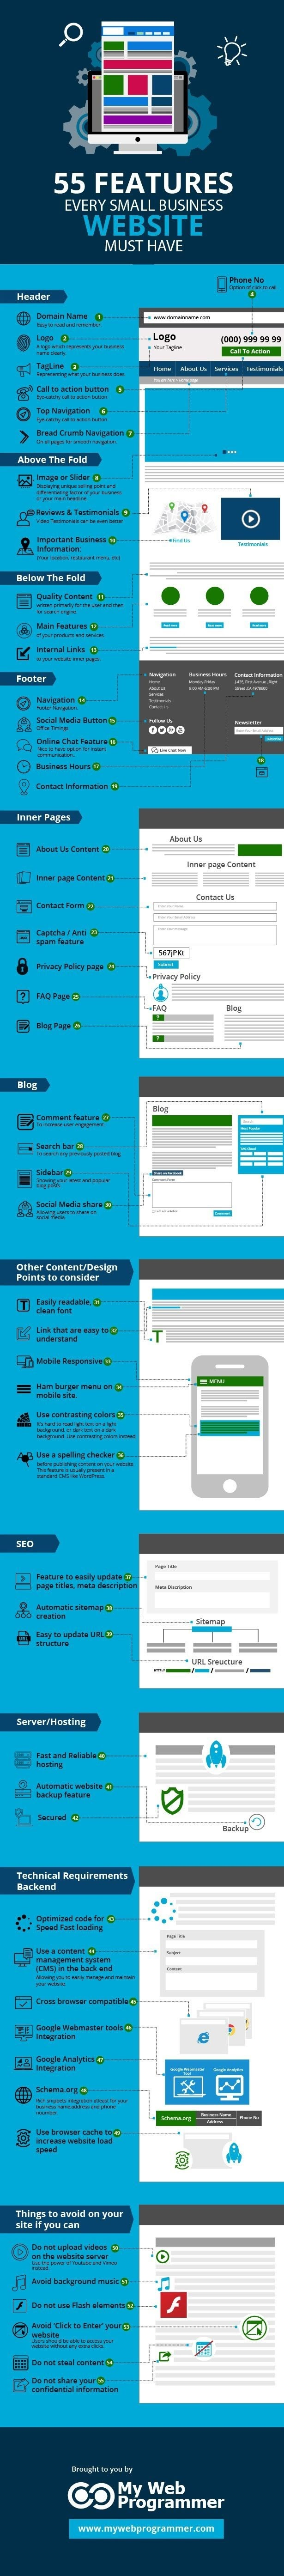 Features Every Small Business Websites Must have #infographic